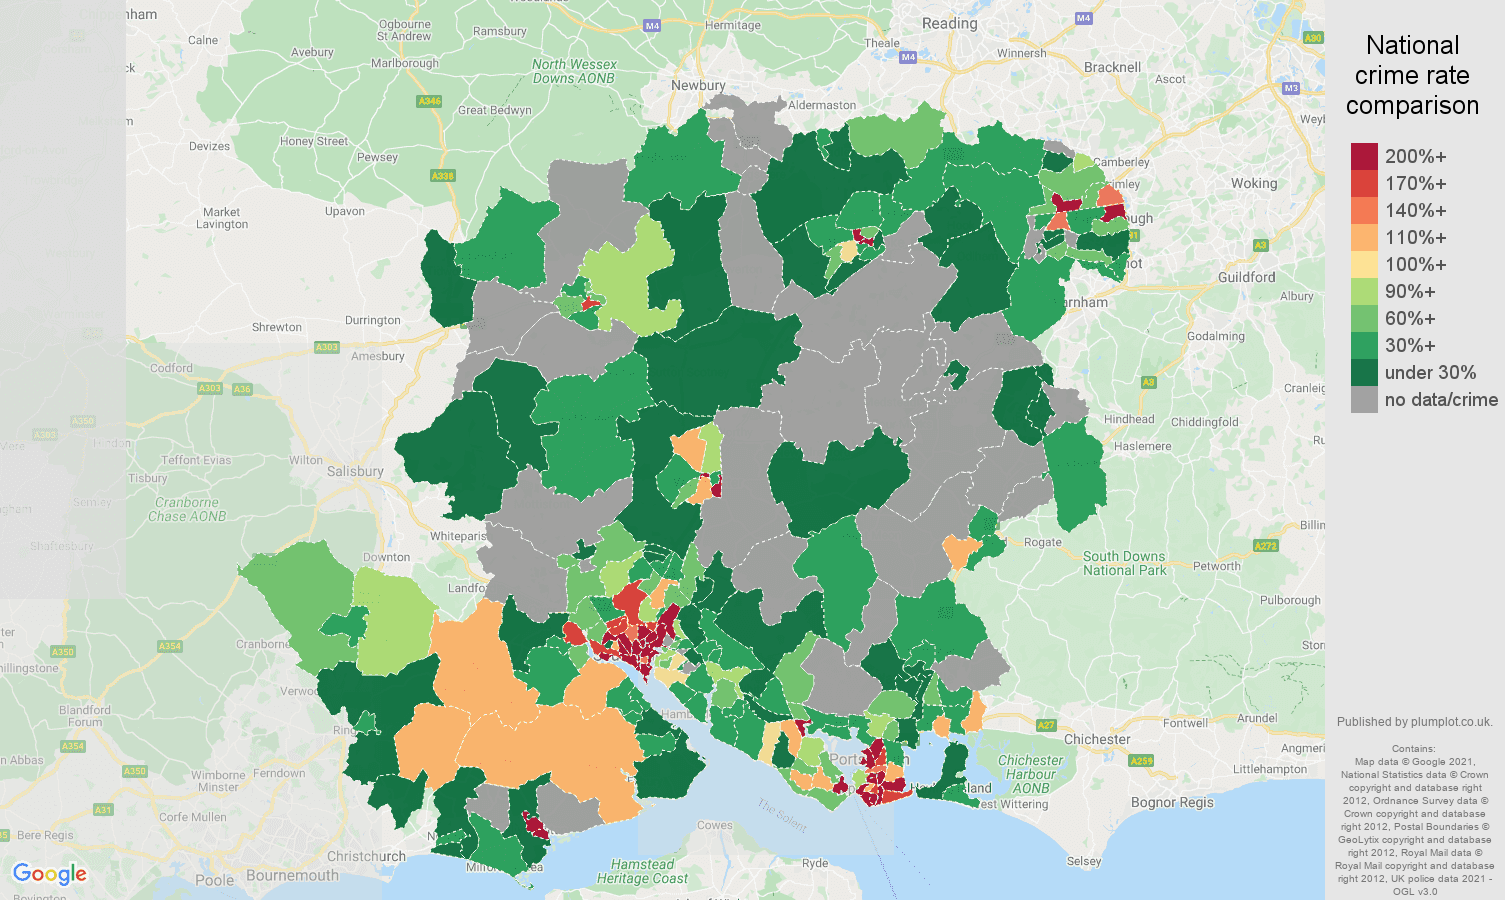 Hampshire bicycle theft crime rate comparison map